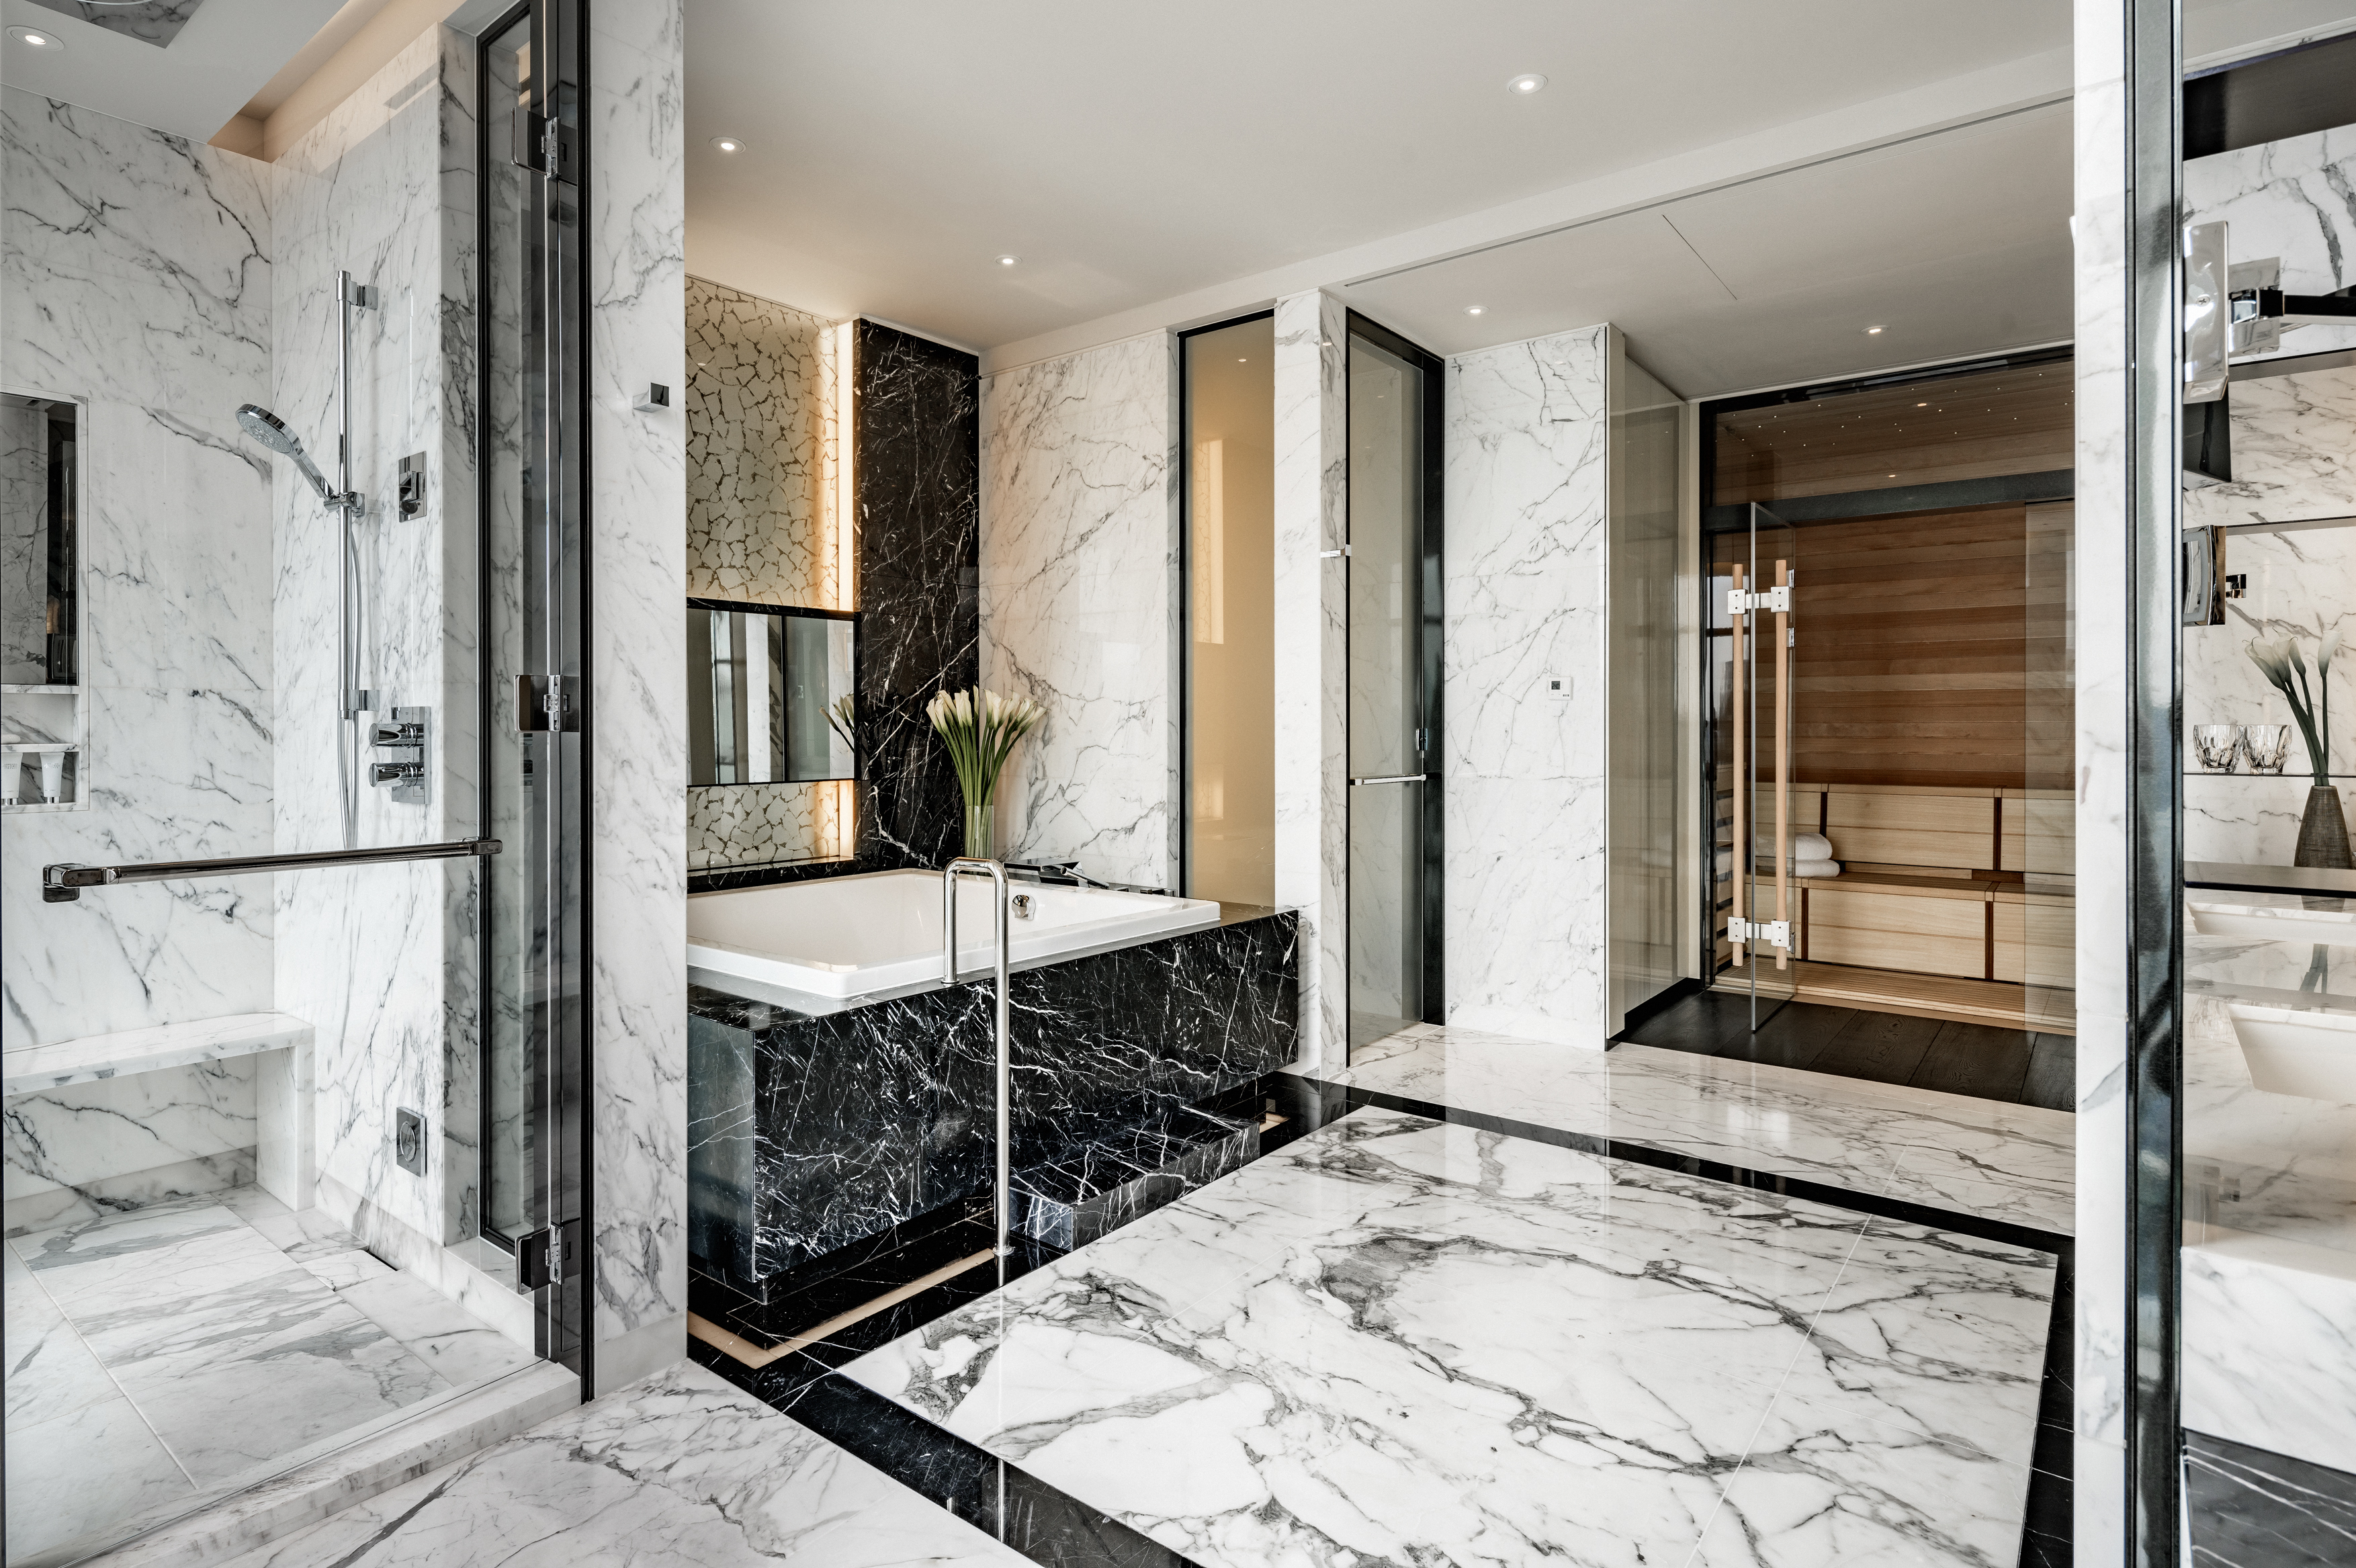 Four seasons seoul sets new standard for luxury hotels for Design hotel seoul